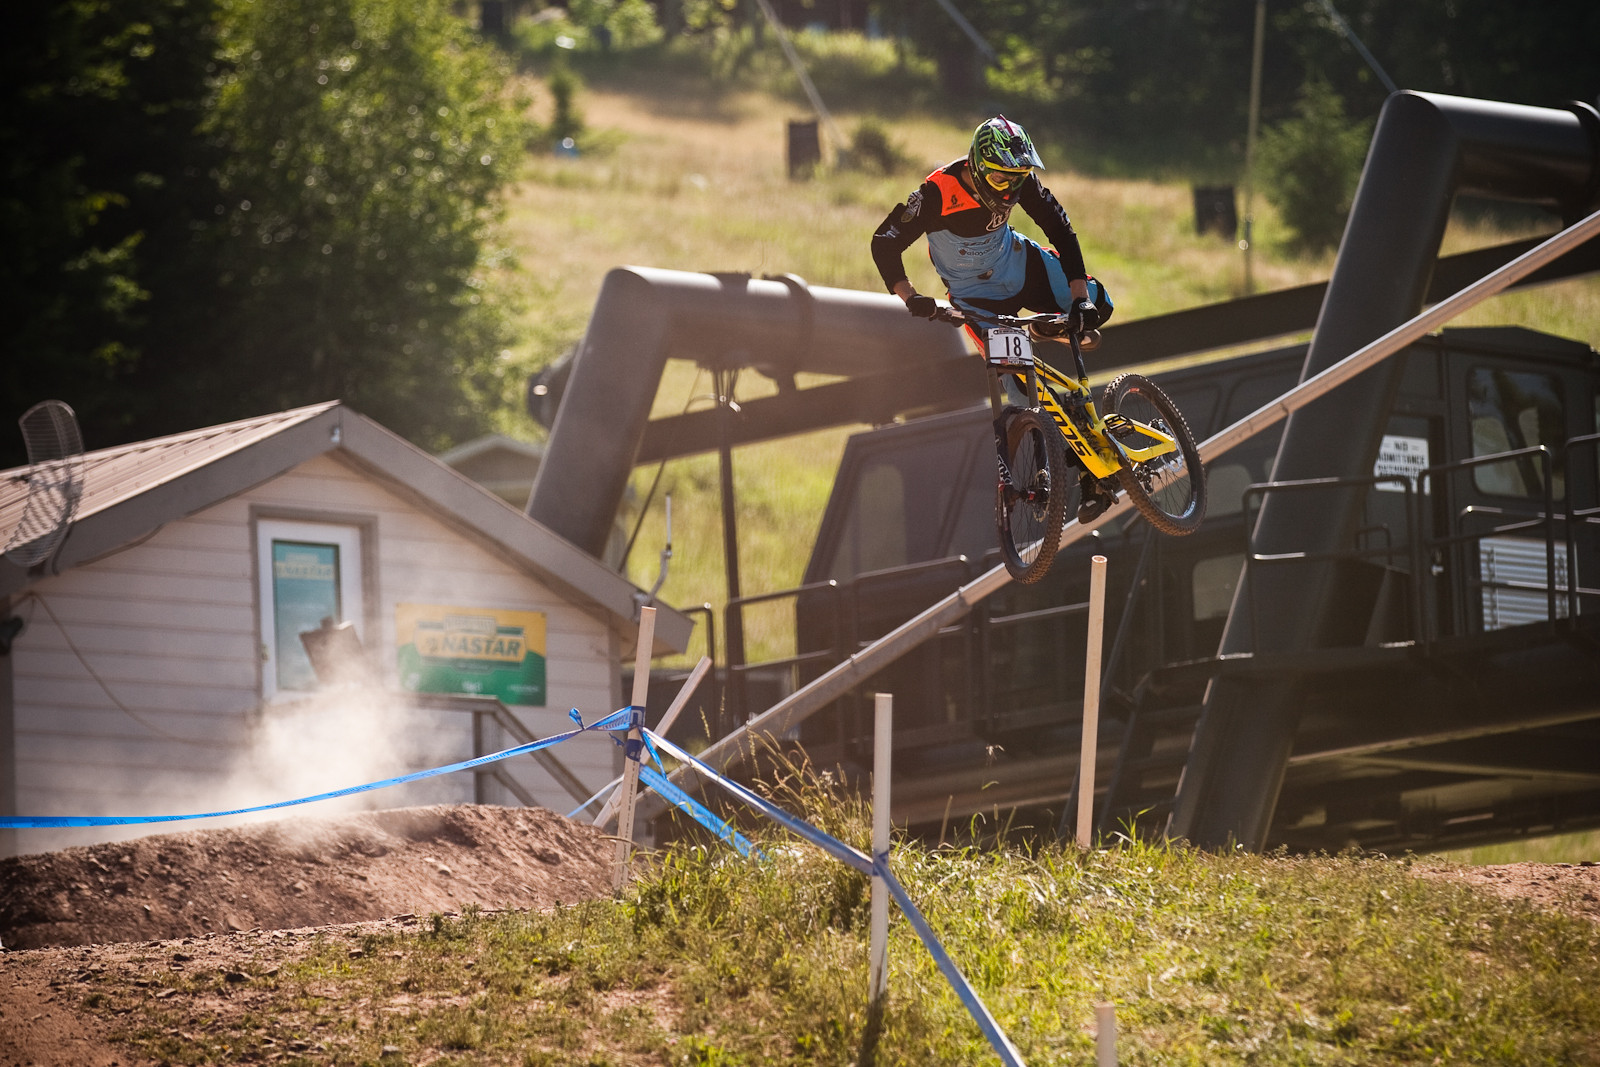 Brendan Fairclough at Windham - 2012 UCI World Cup, Windham, New York Day 2 - Mountain Biking Pictures - Vital MTB